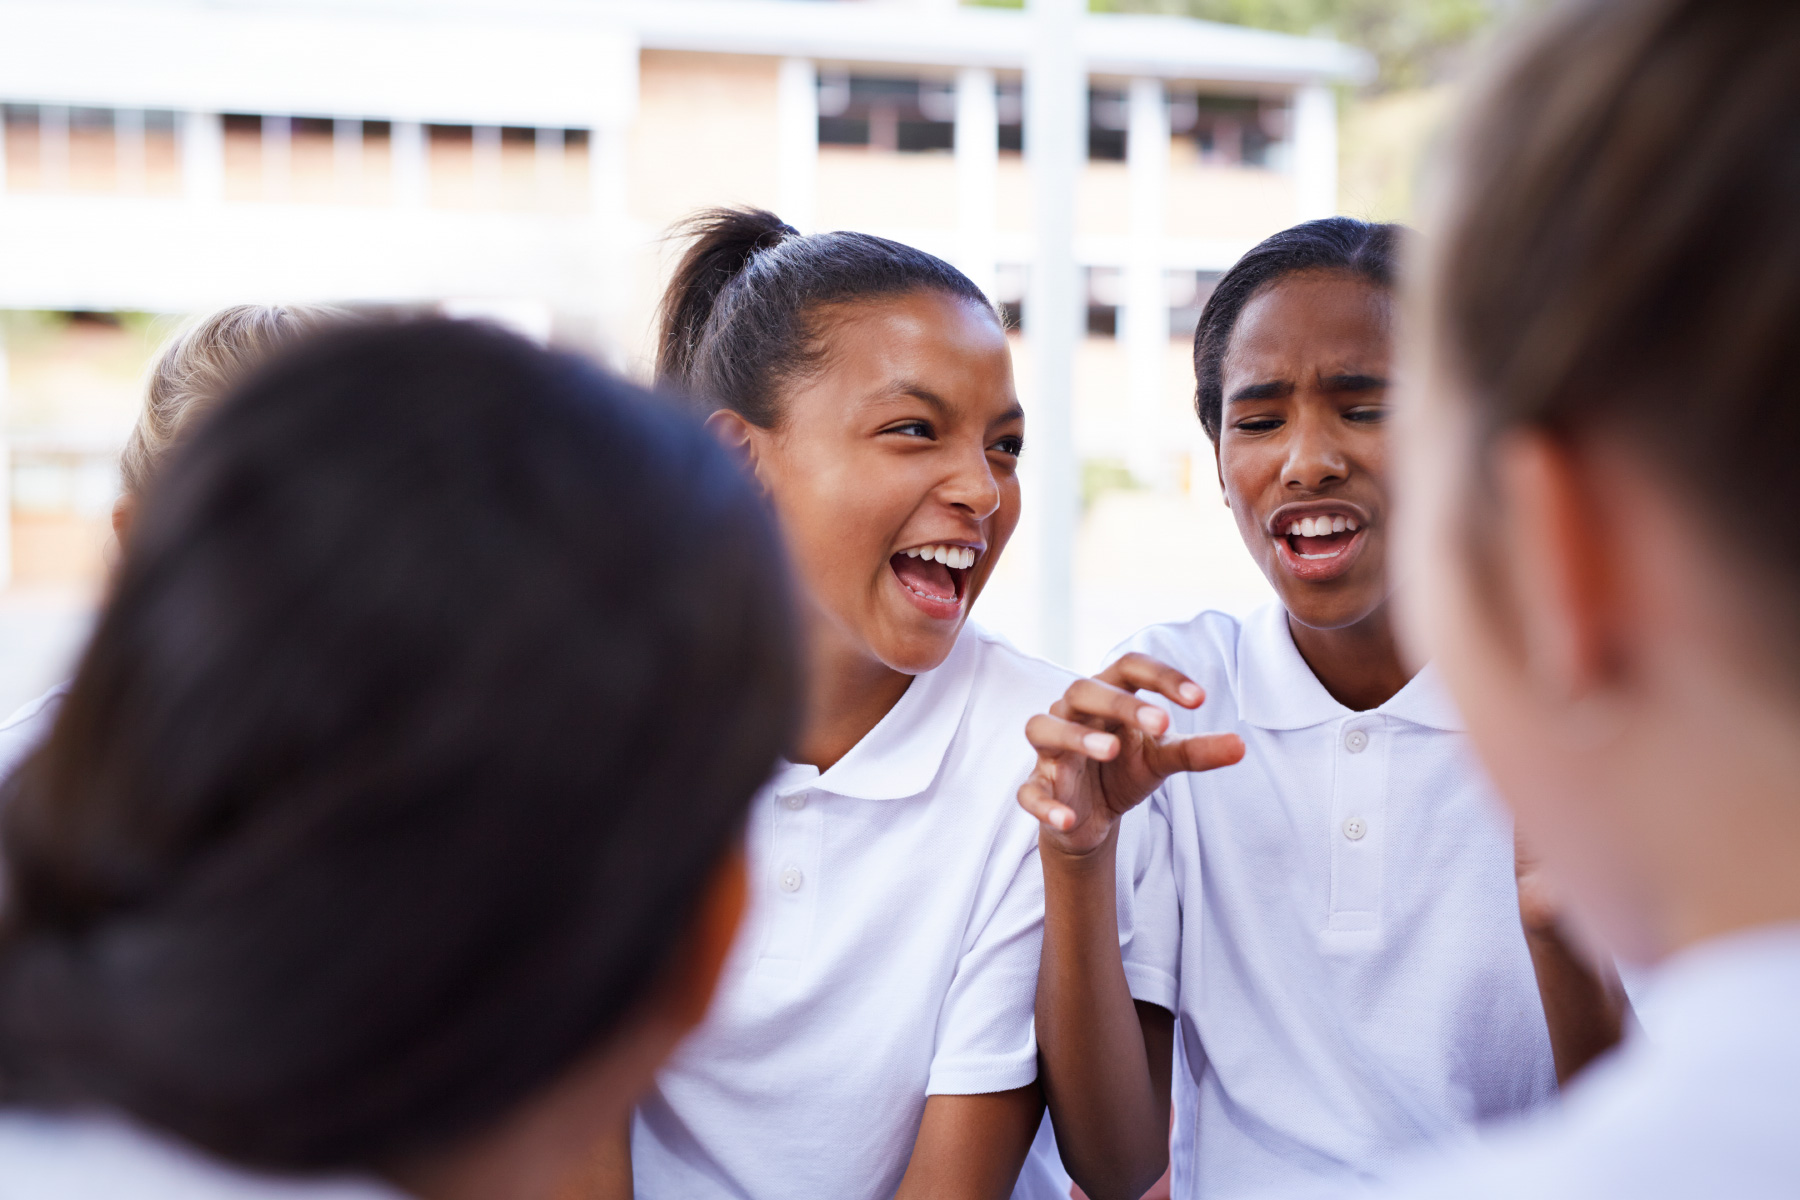 Group of friends laughing in schoolyard